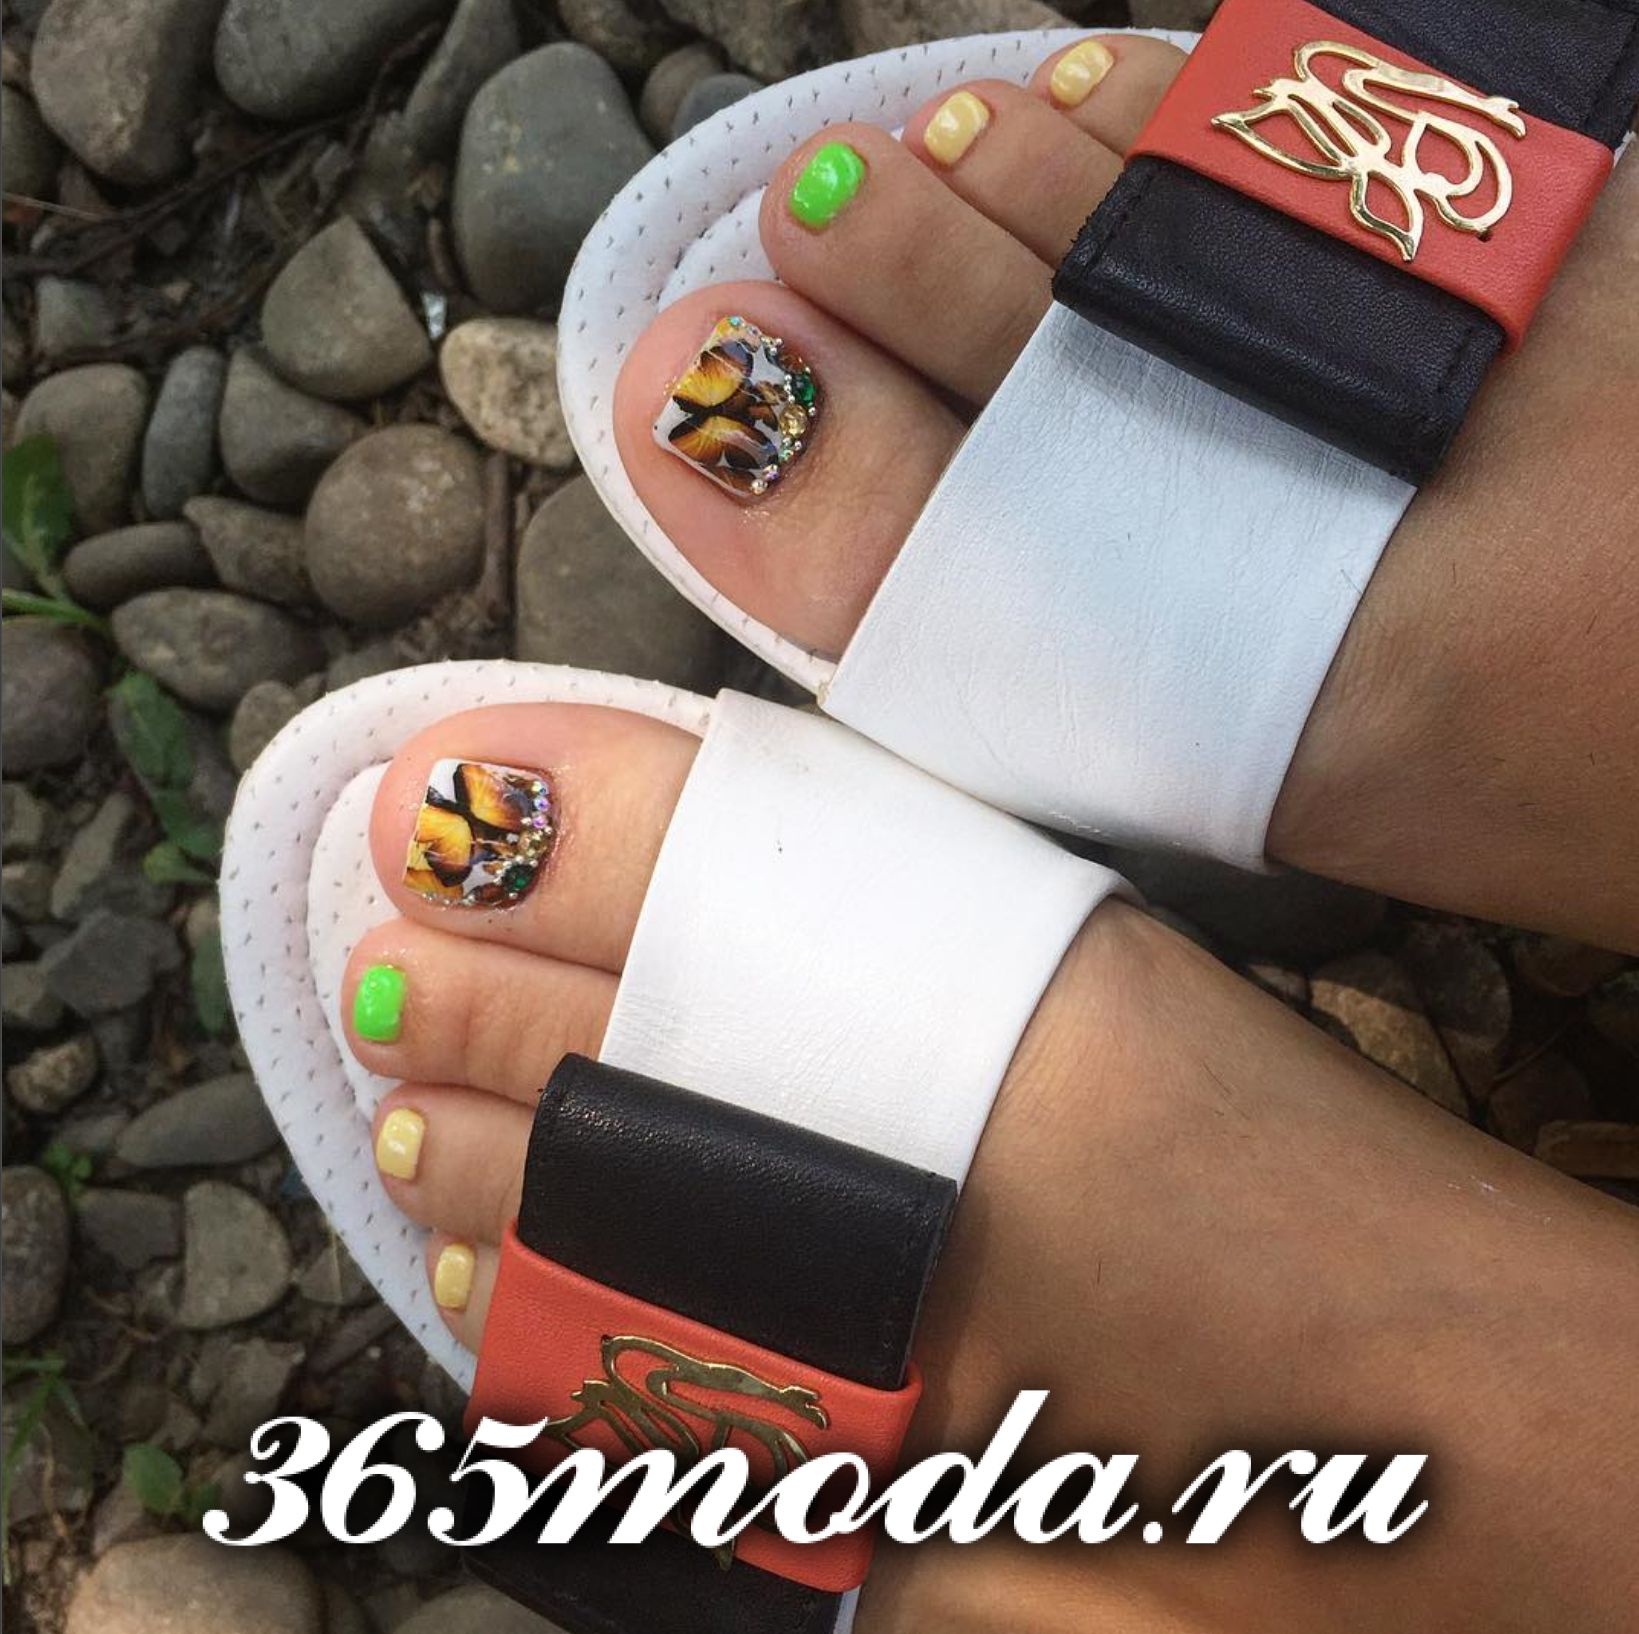 pedicur (26)